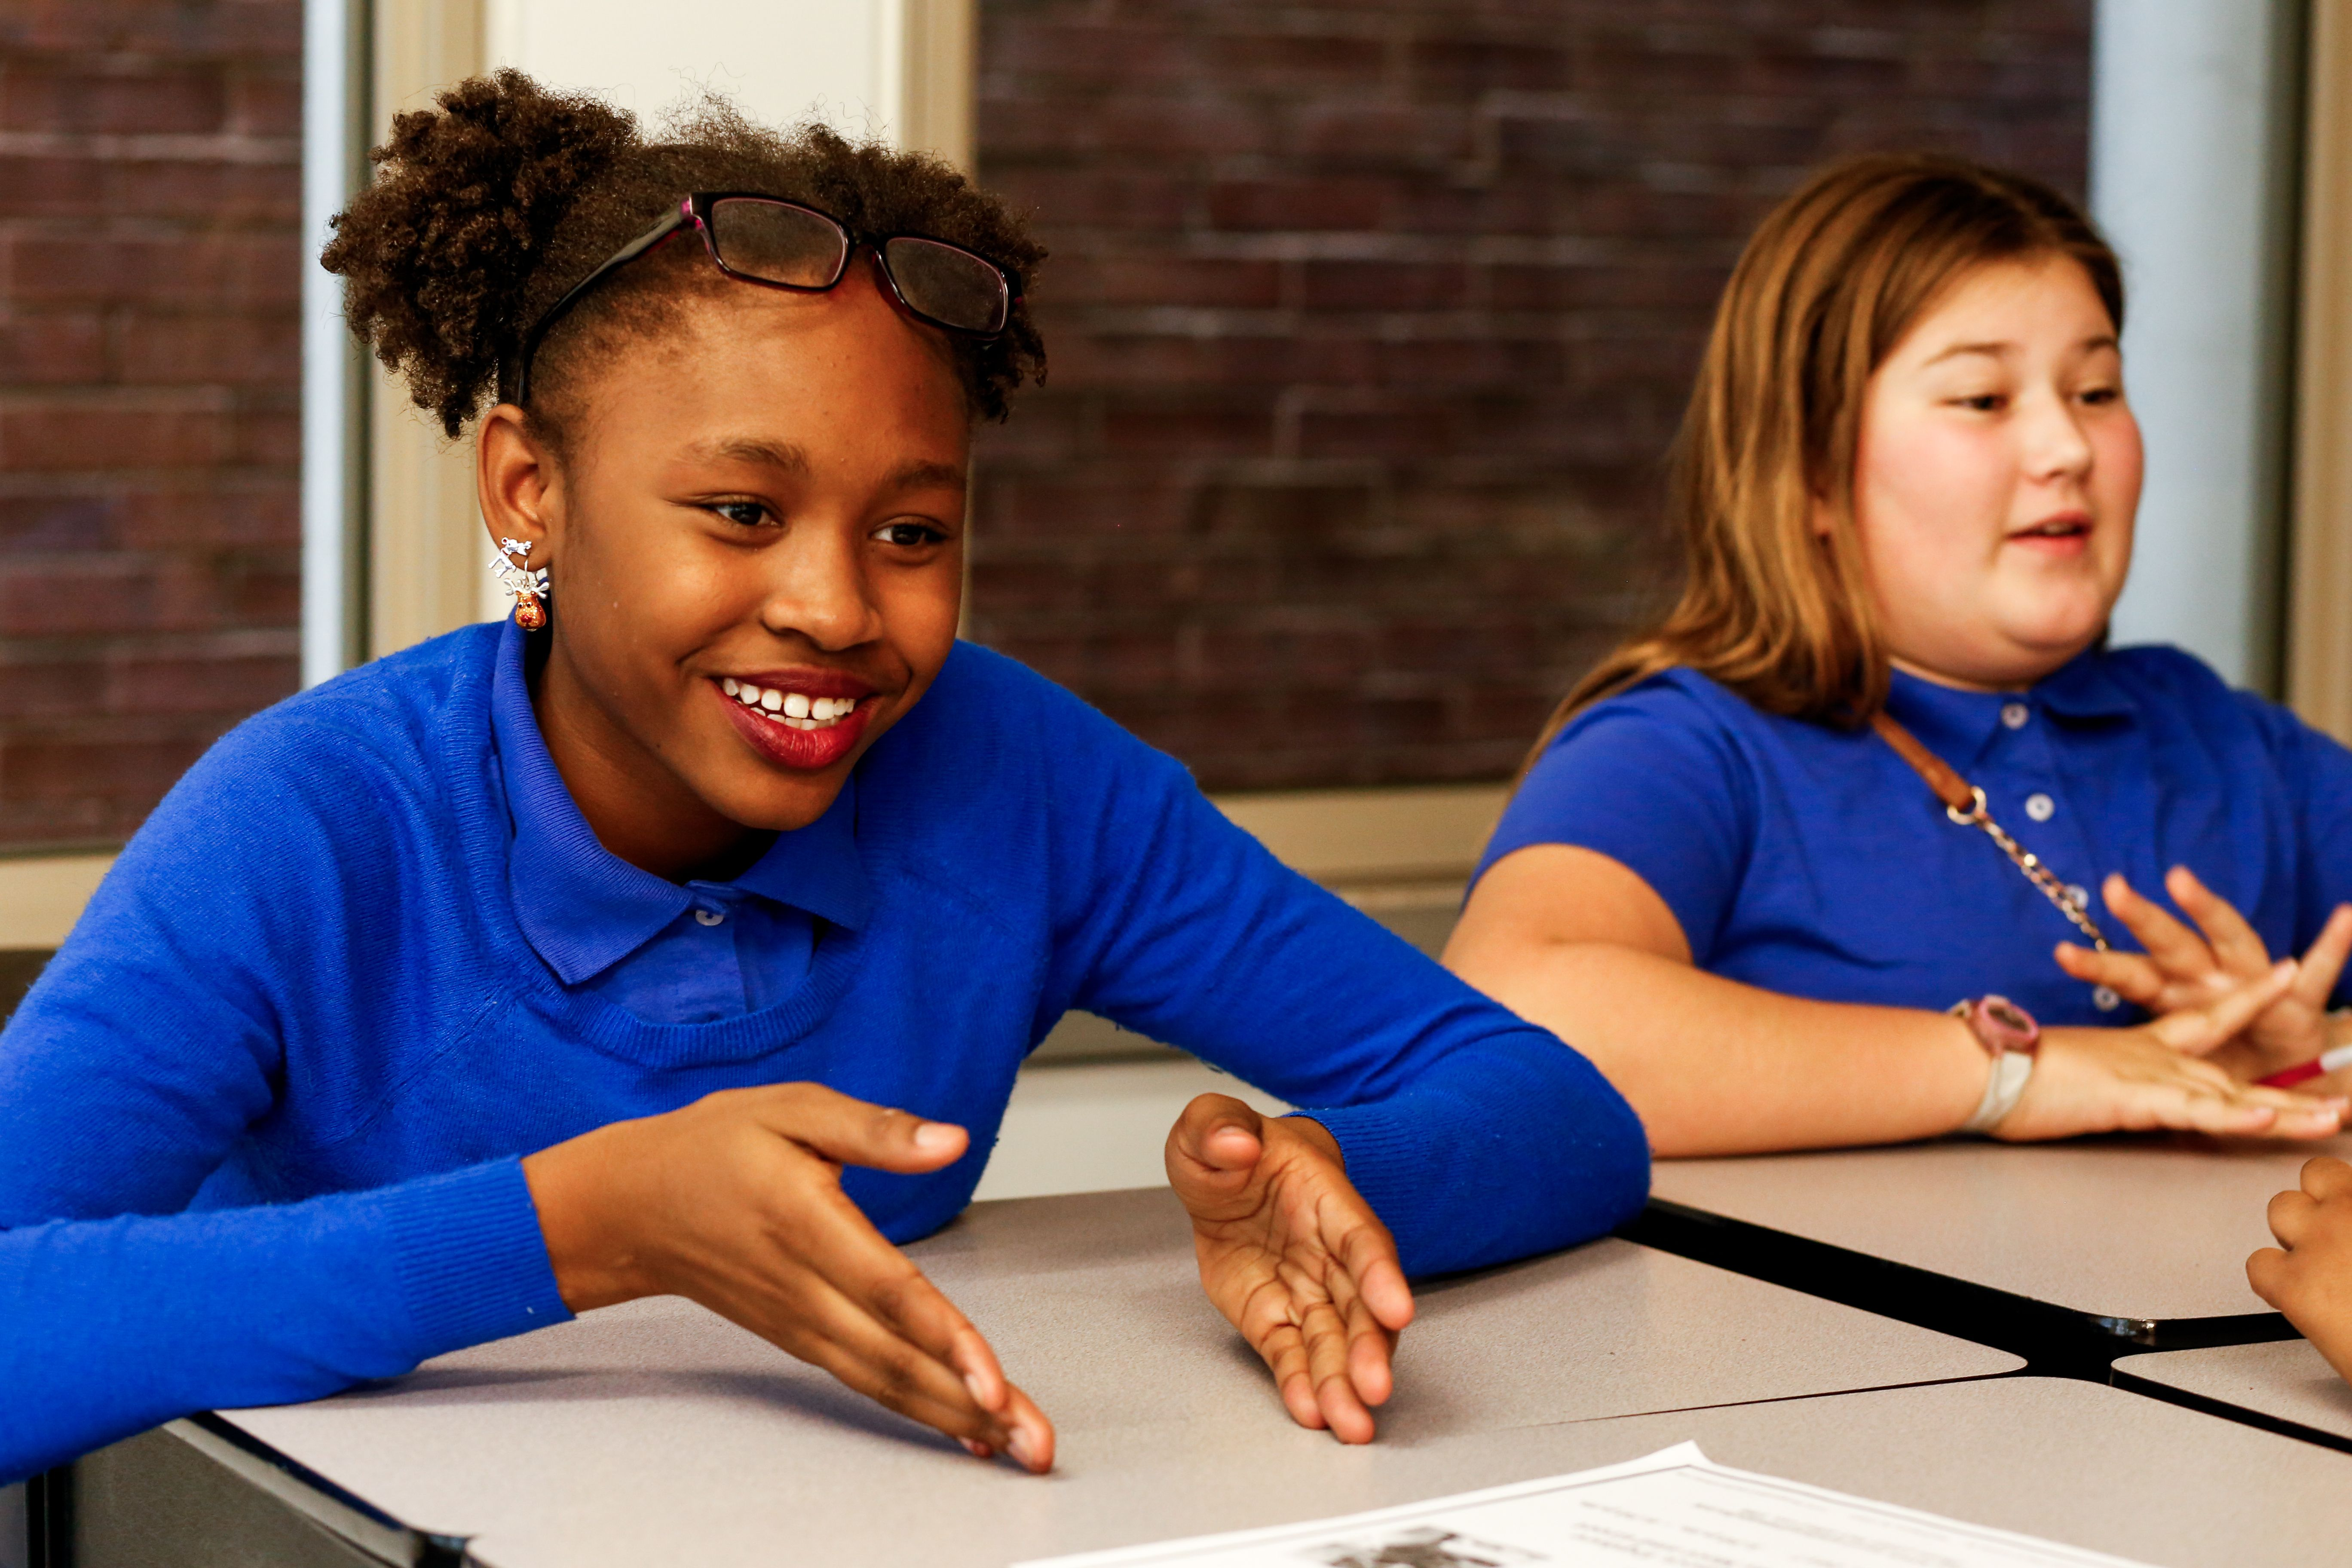 Students at Washington Global Public Charter School. Image by Eslah Attar. United States, 2017.